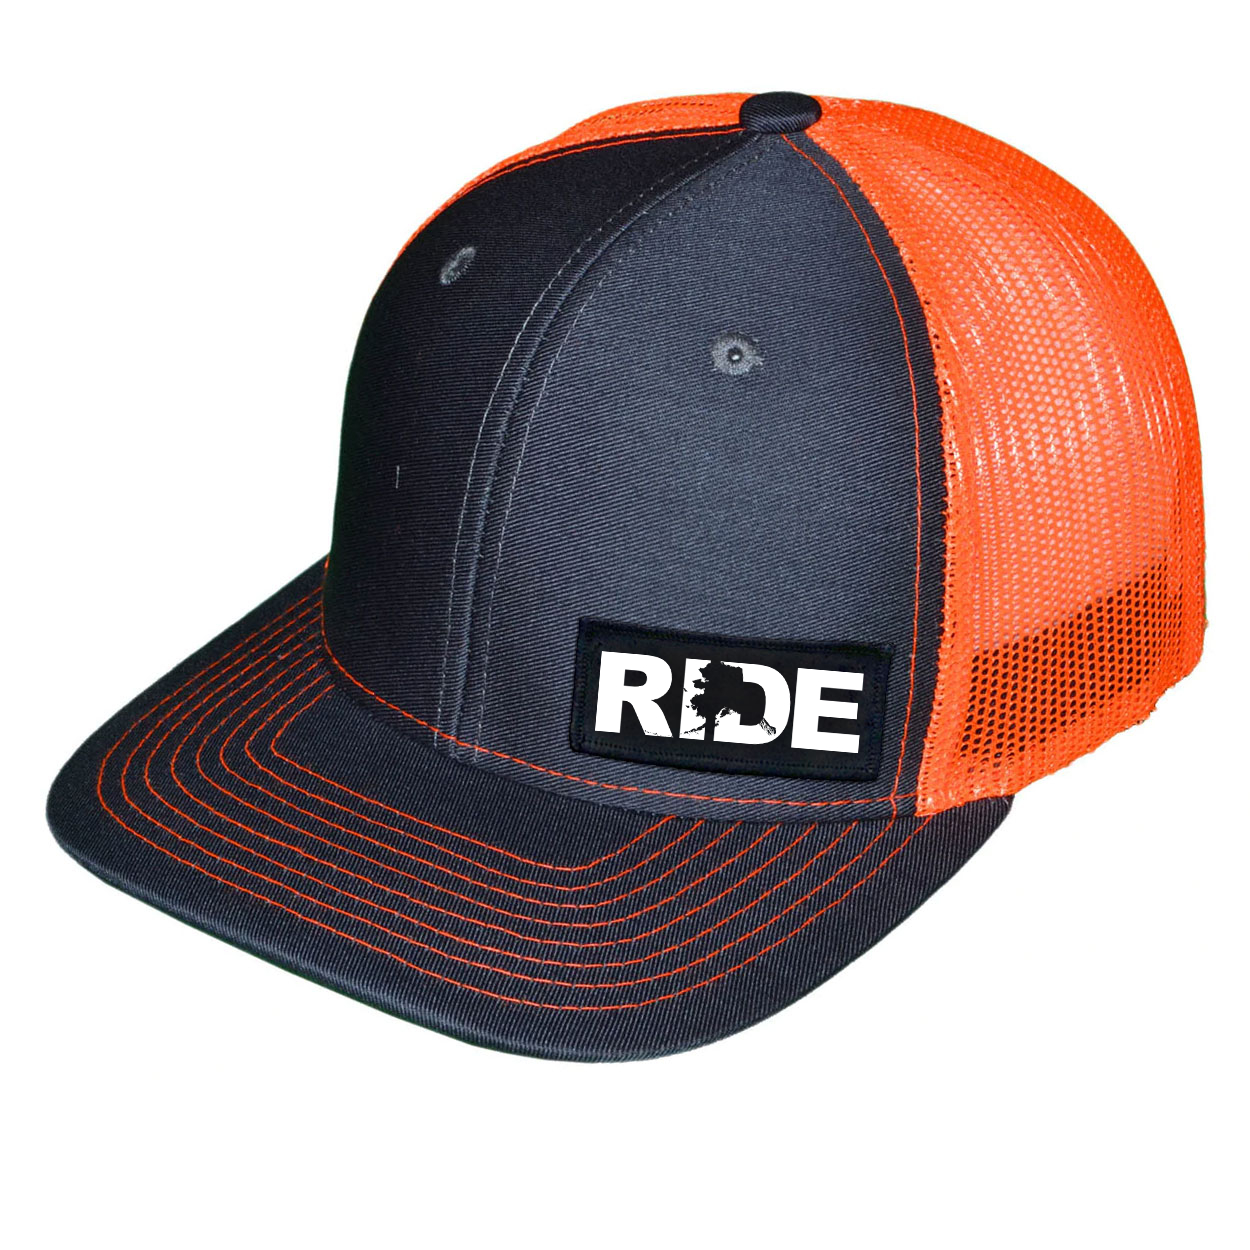 Ride Alaska Night Out Woven Patch Snapback Trucker Hat Dark Gray/Orange (White Logo)